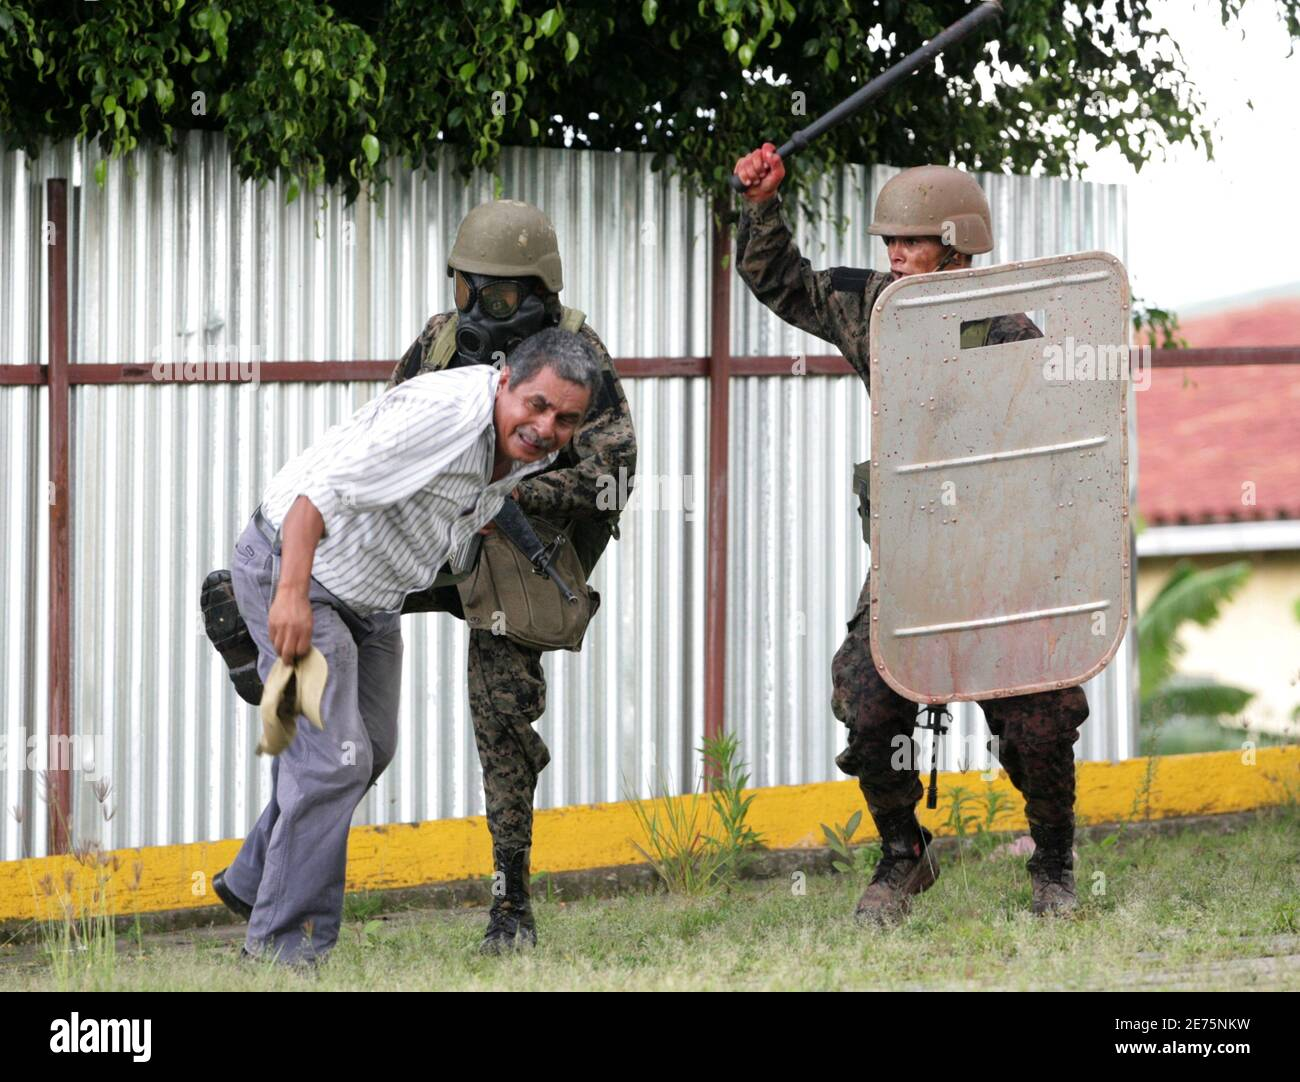 Soldiers attack a supporter of Honduras' ousted President Manuel Zelaya in Tegucigalpa June 29, 2009. Some 1,500 protesters, some of them masked and carrying sticks, taunted soldiers and burned tires just outside the gates of the presidential palace in a face-off with security forces. Honduras came under pressure on Monday to reinstate Zelaya as many Latin American leaders agreed to withdraw envoys. REUTERS/Oswaldo Rivas  (HONDURAS POLITICS CONFLICT) Stock Photo